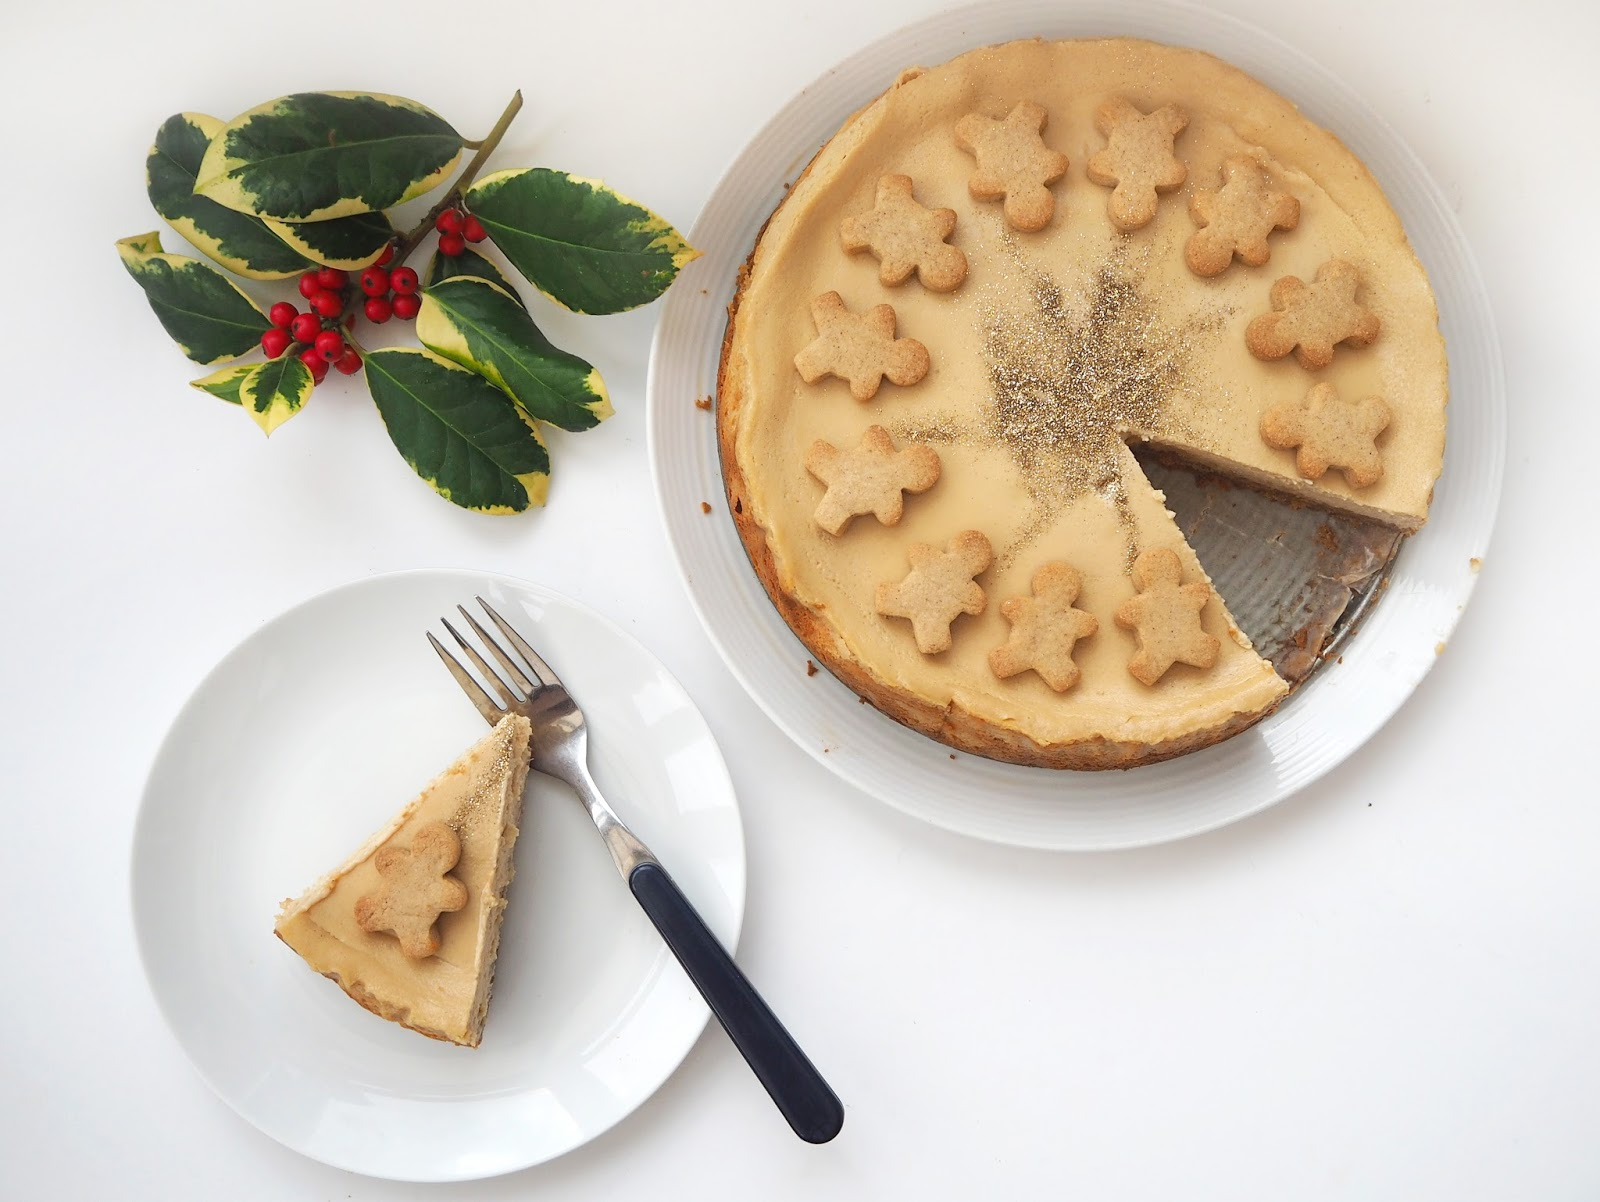 Gingerbread Cheesecake Recipe, Katie Kirk Loves, Food Blogger, Christmas Dessert, Christmas Food, Christmas Recipe, Gingerbread Recipe, Baked Cheekcake Recipe UK Blogger, UK Food Blogger